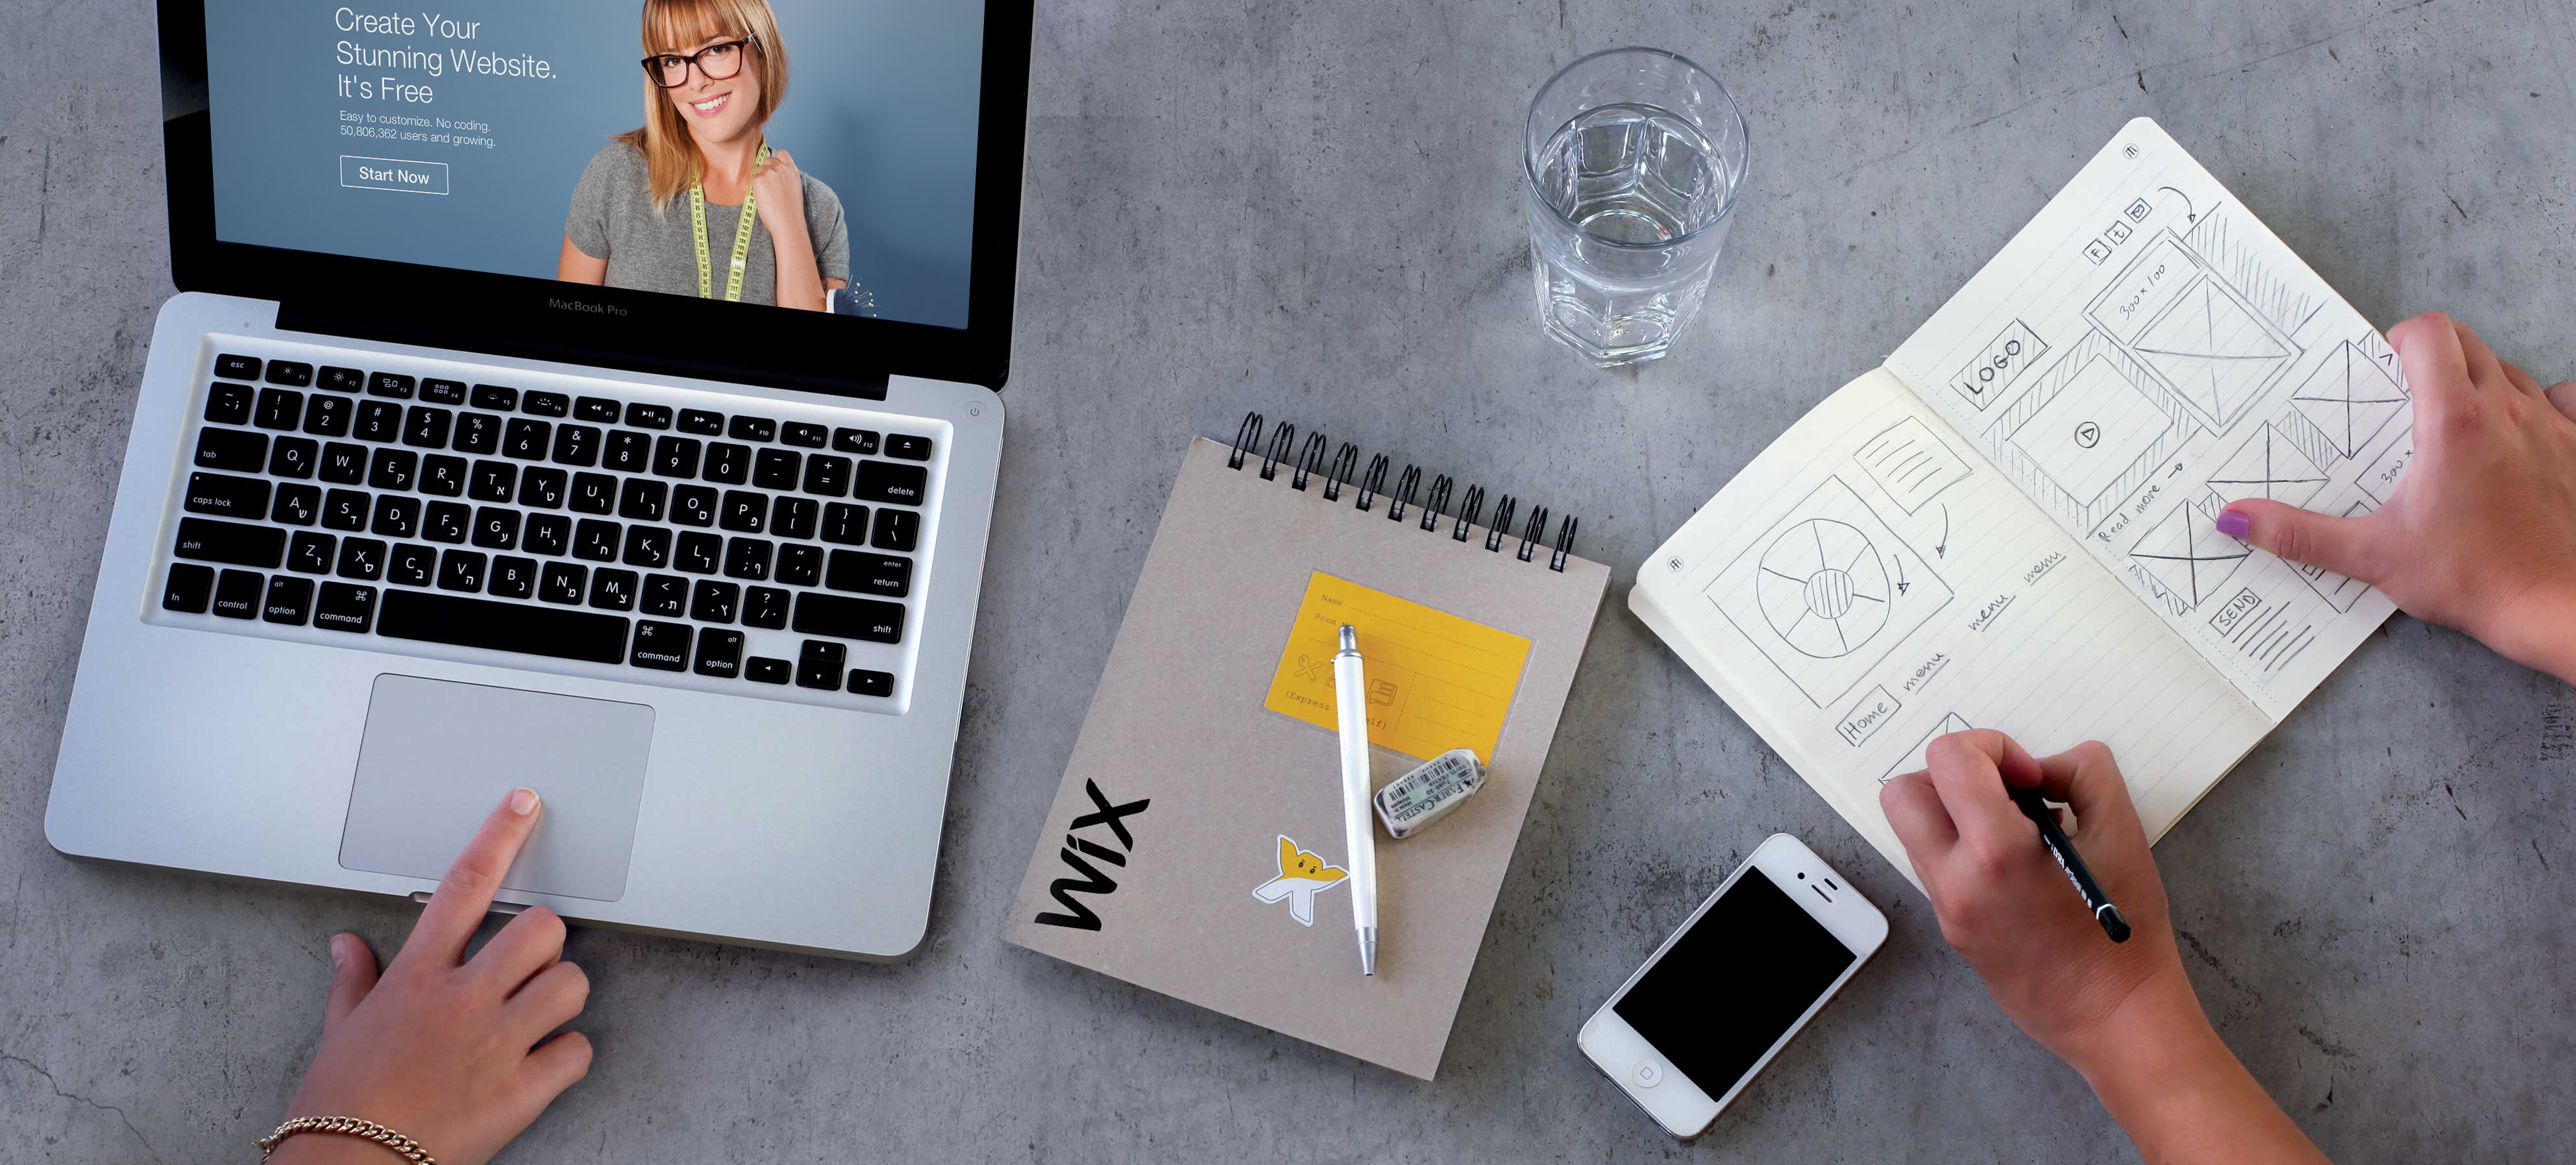 Wix Working Space 05 Image for NGINX Plus Case Study